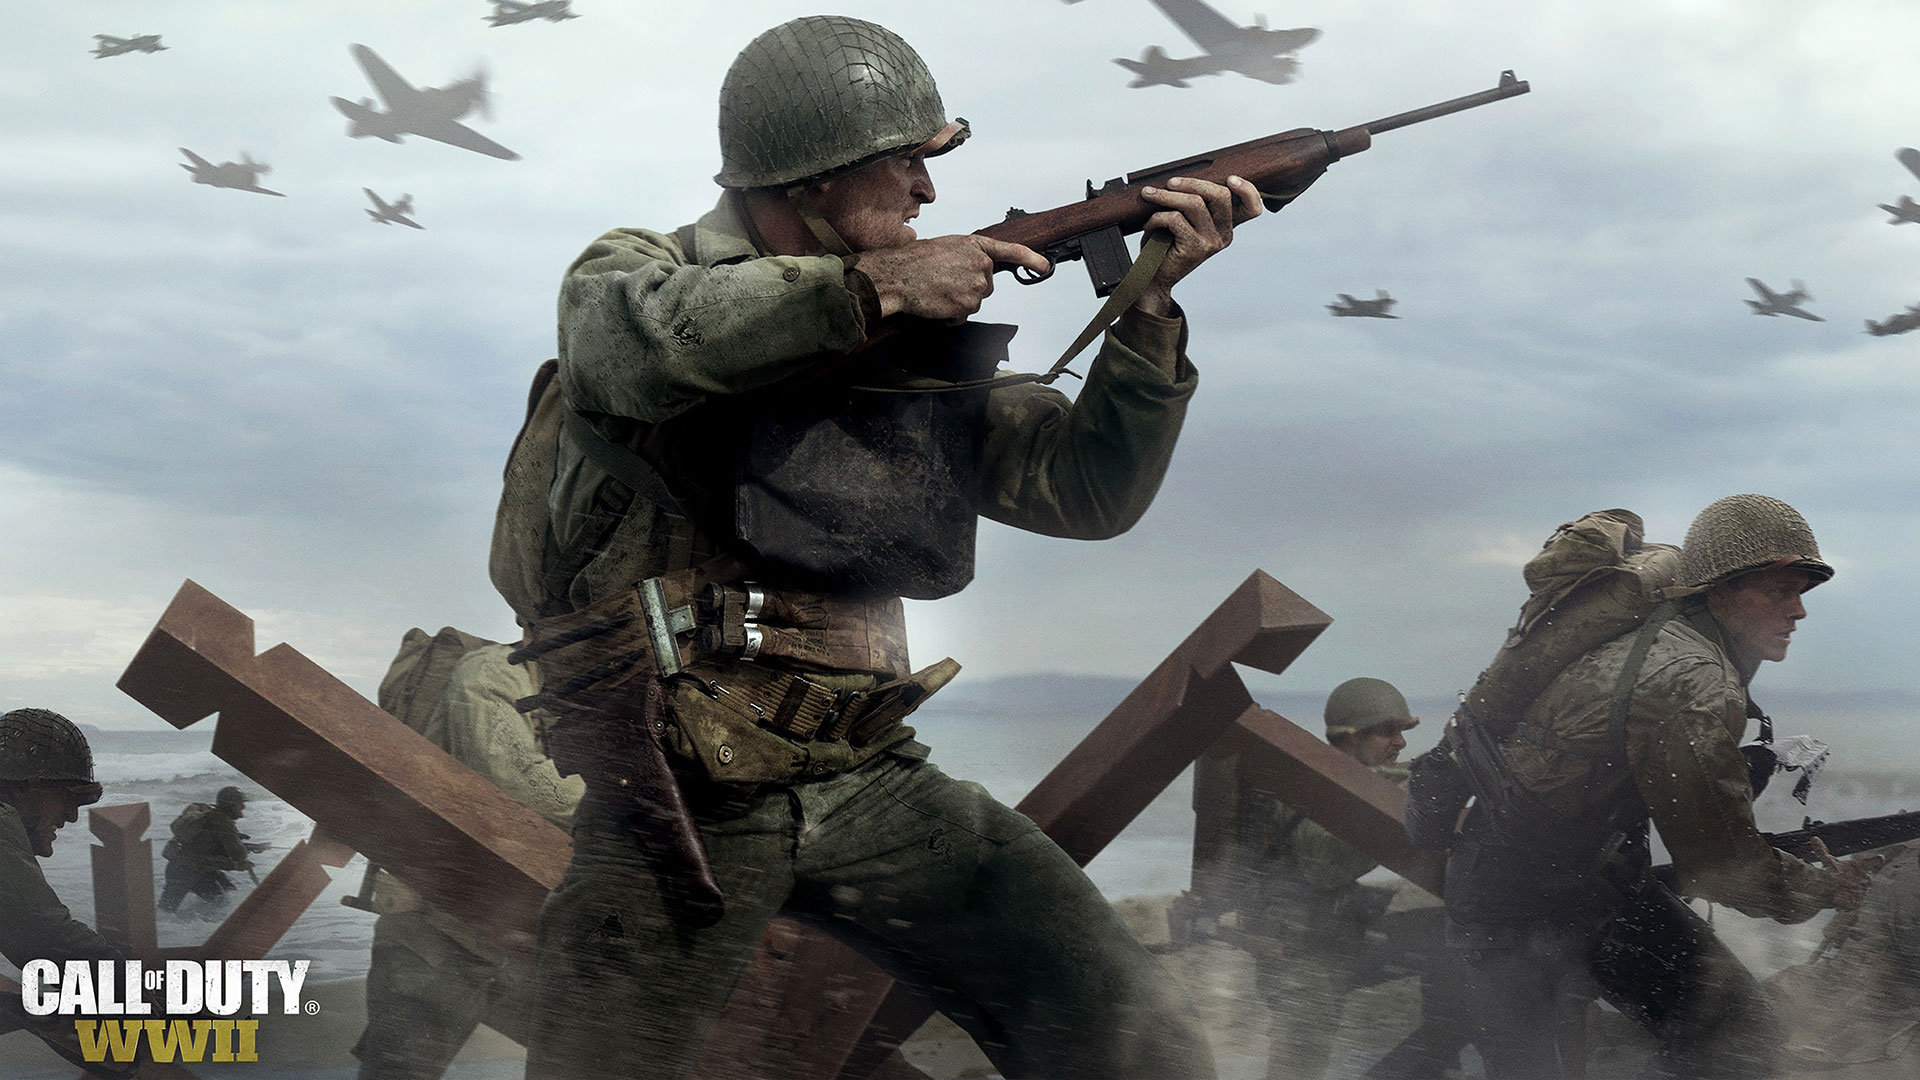 call-of-duty-wwii-sales-up-over-call-of-duty-infinite-warfare-by-half-in-uk-social.jpg